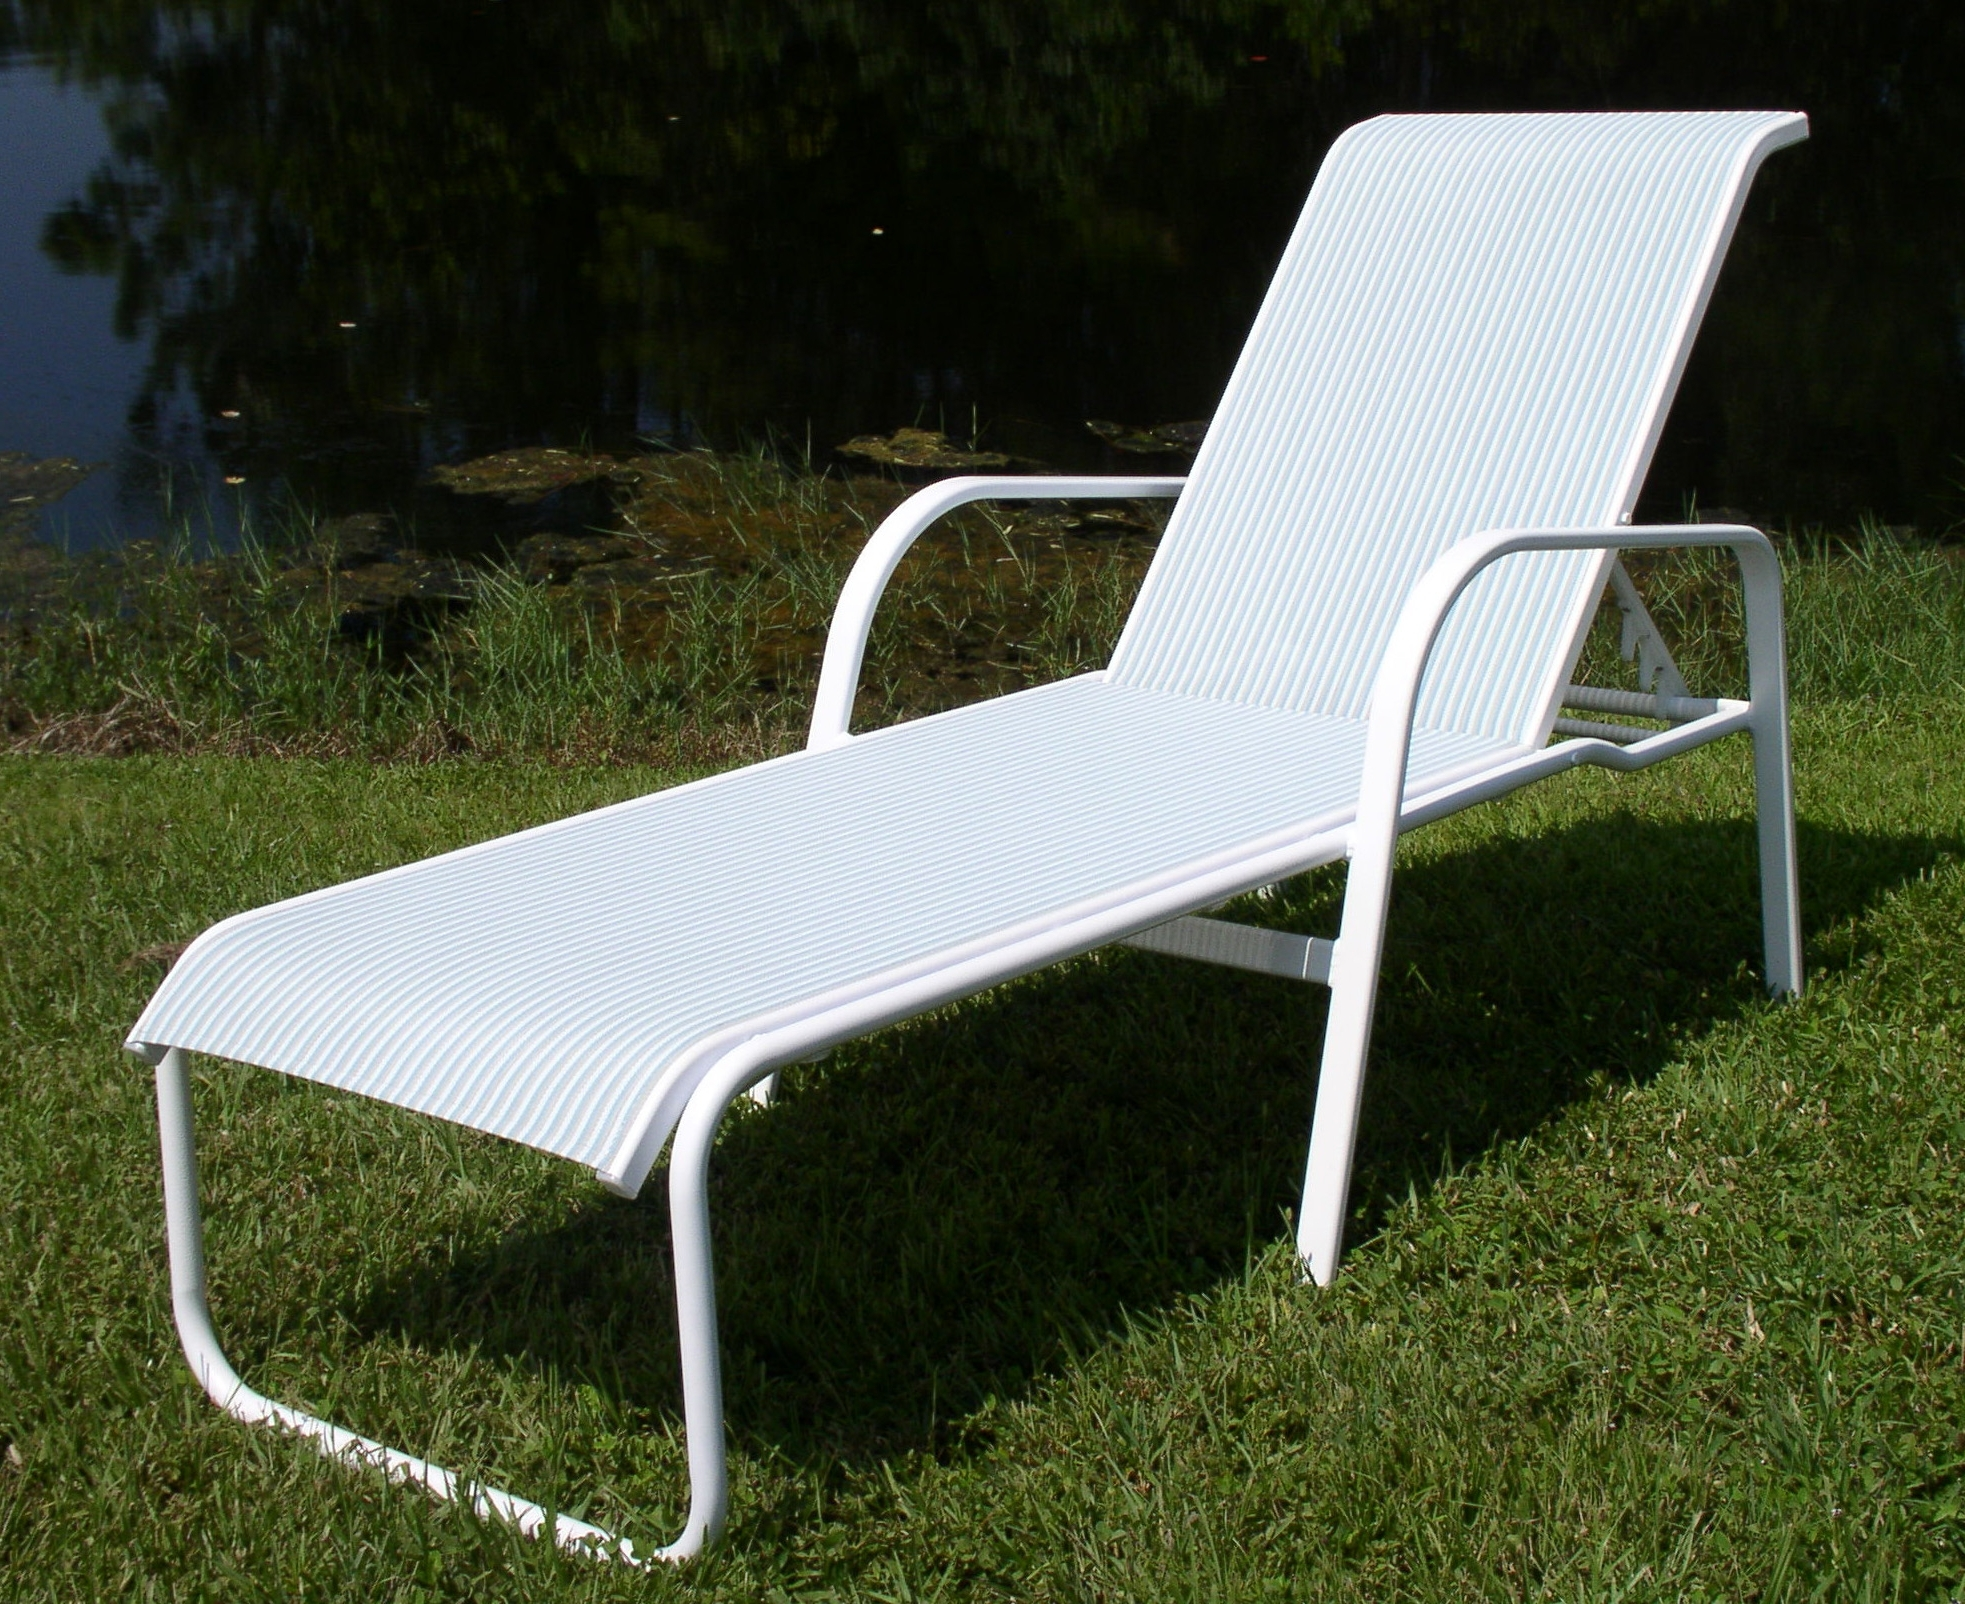 Well Known Chaise Lounge Chairs At Sears In Furniture: Kmart Lawn Chairs (View 11 of 15)